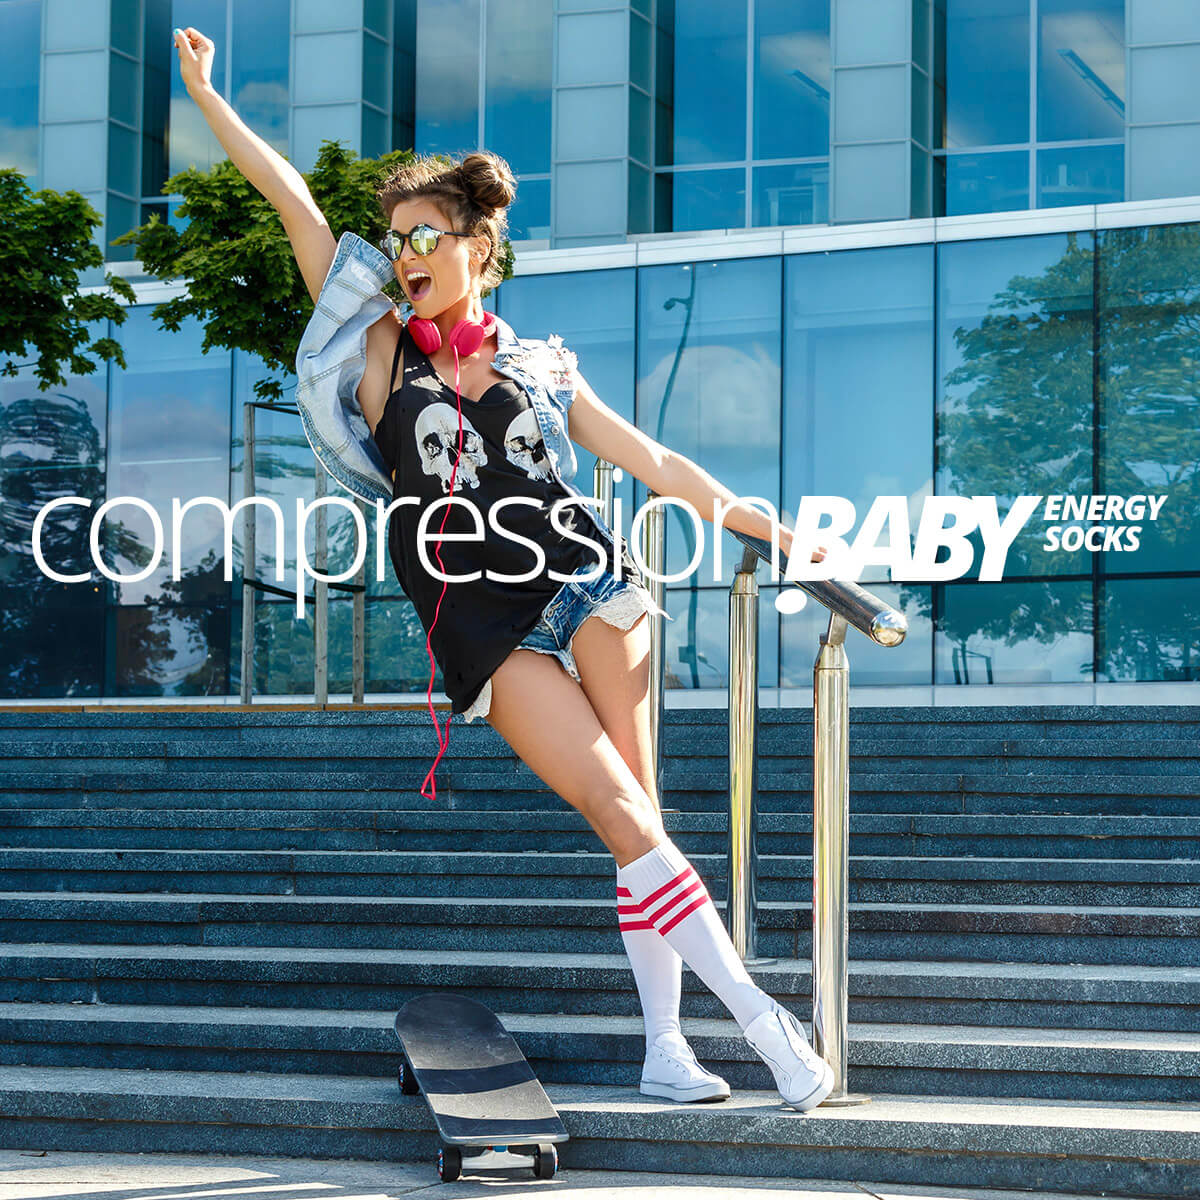 Compression Baby Energy Socks